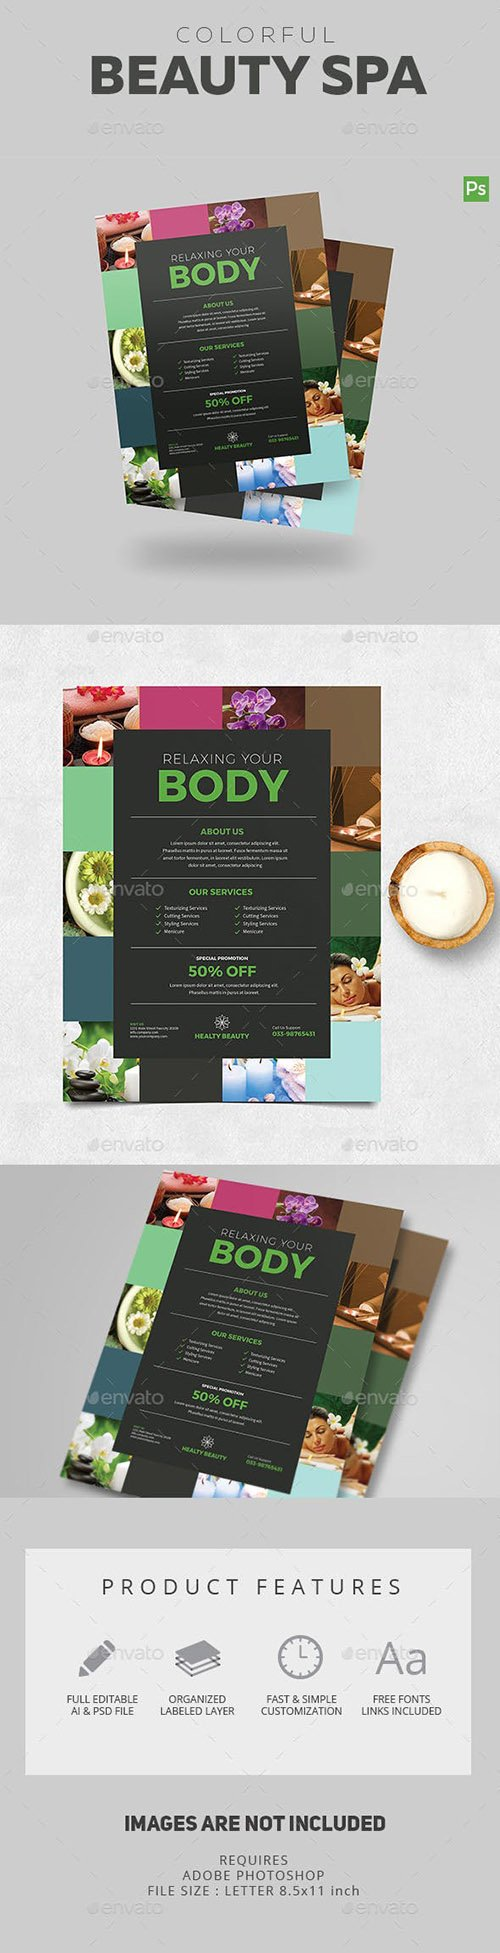 Colorful Spa Flyer 18715128